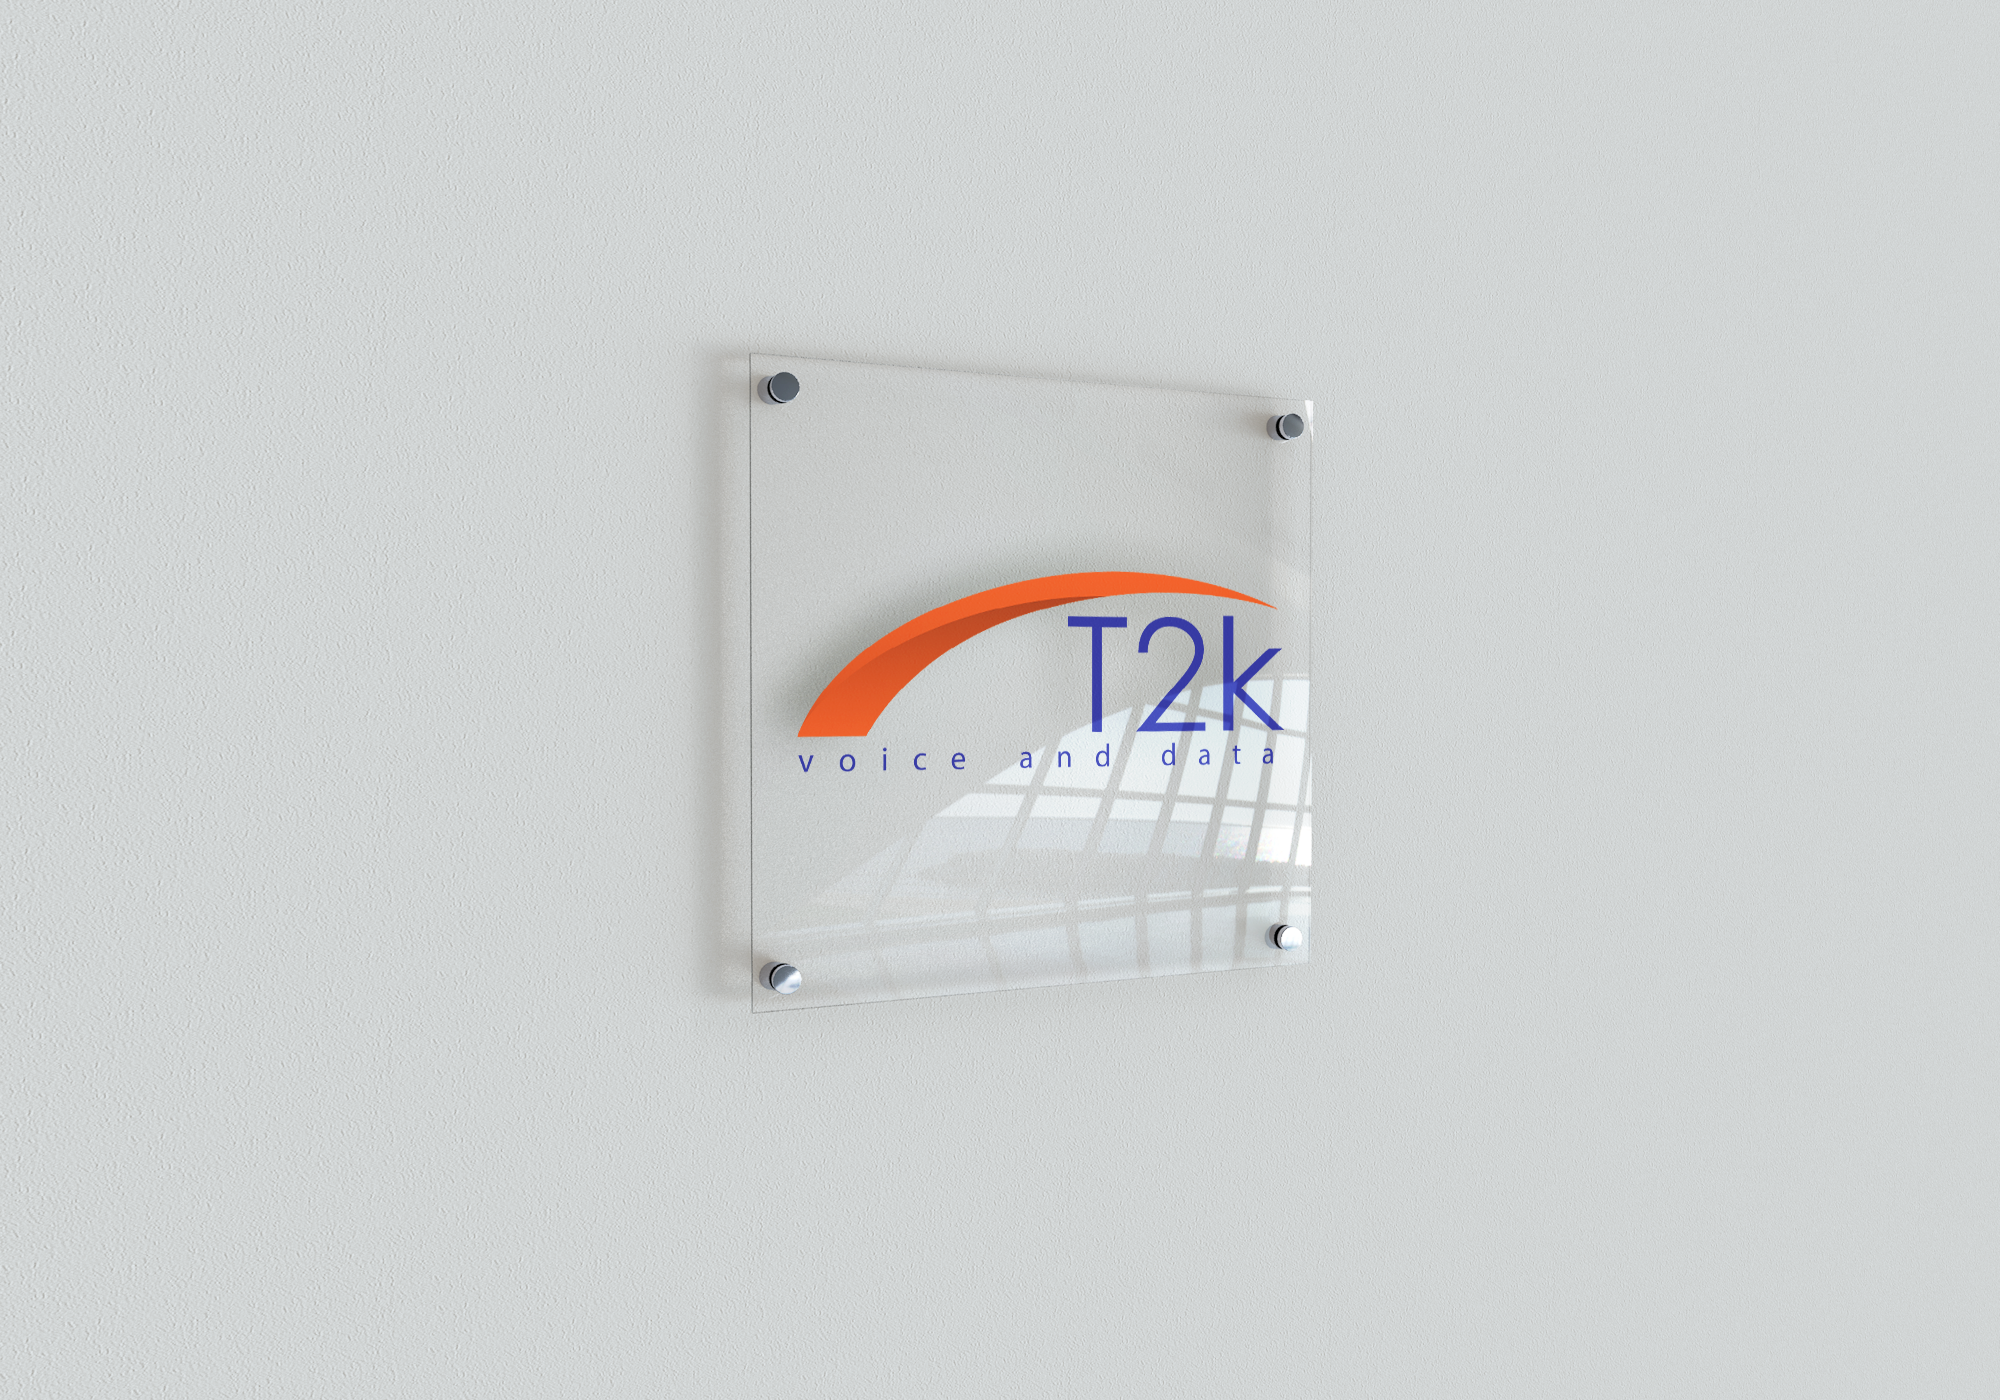 t2k-sign-indoor-reception